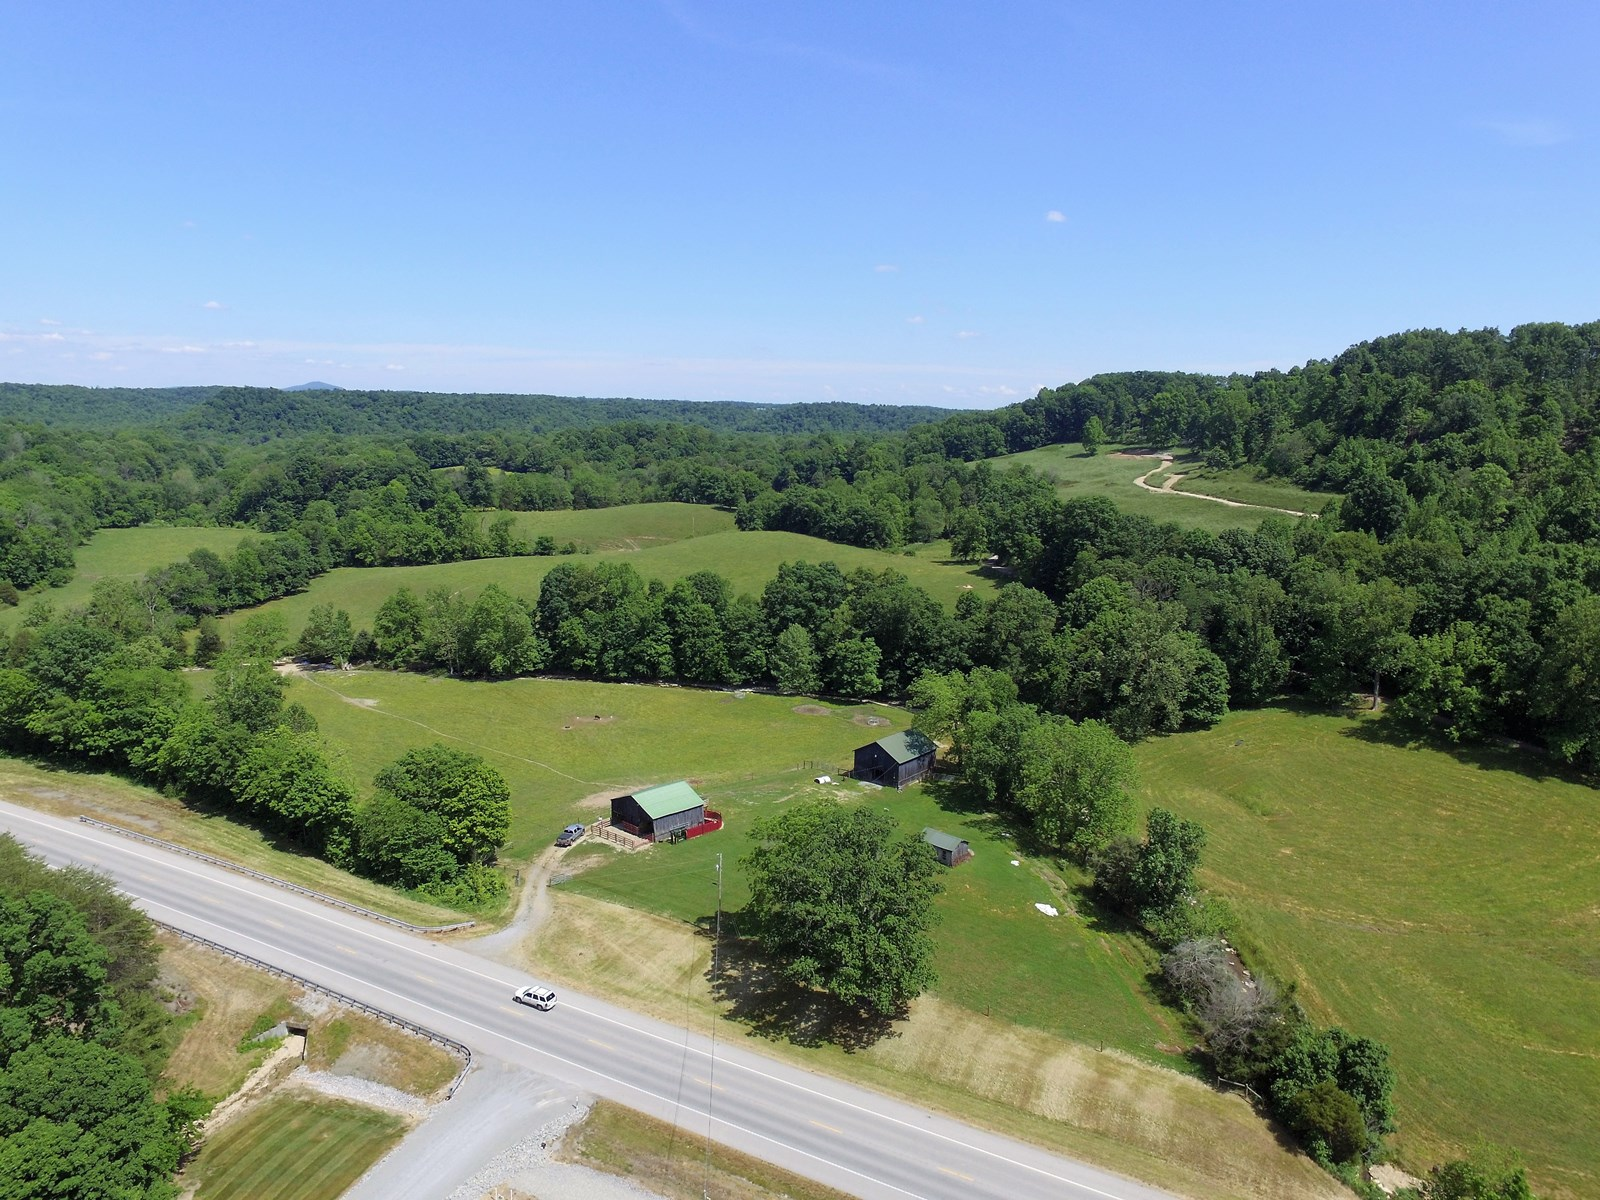 CATTLE FARM - BARNS - CREEK - PASTURE - DUNNVILLE, KY.